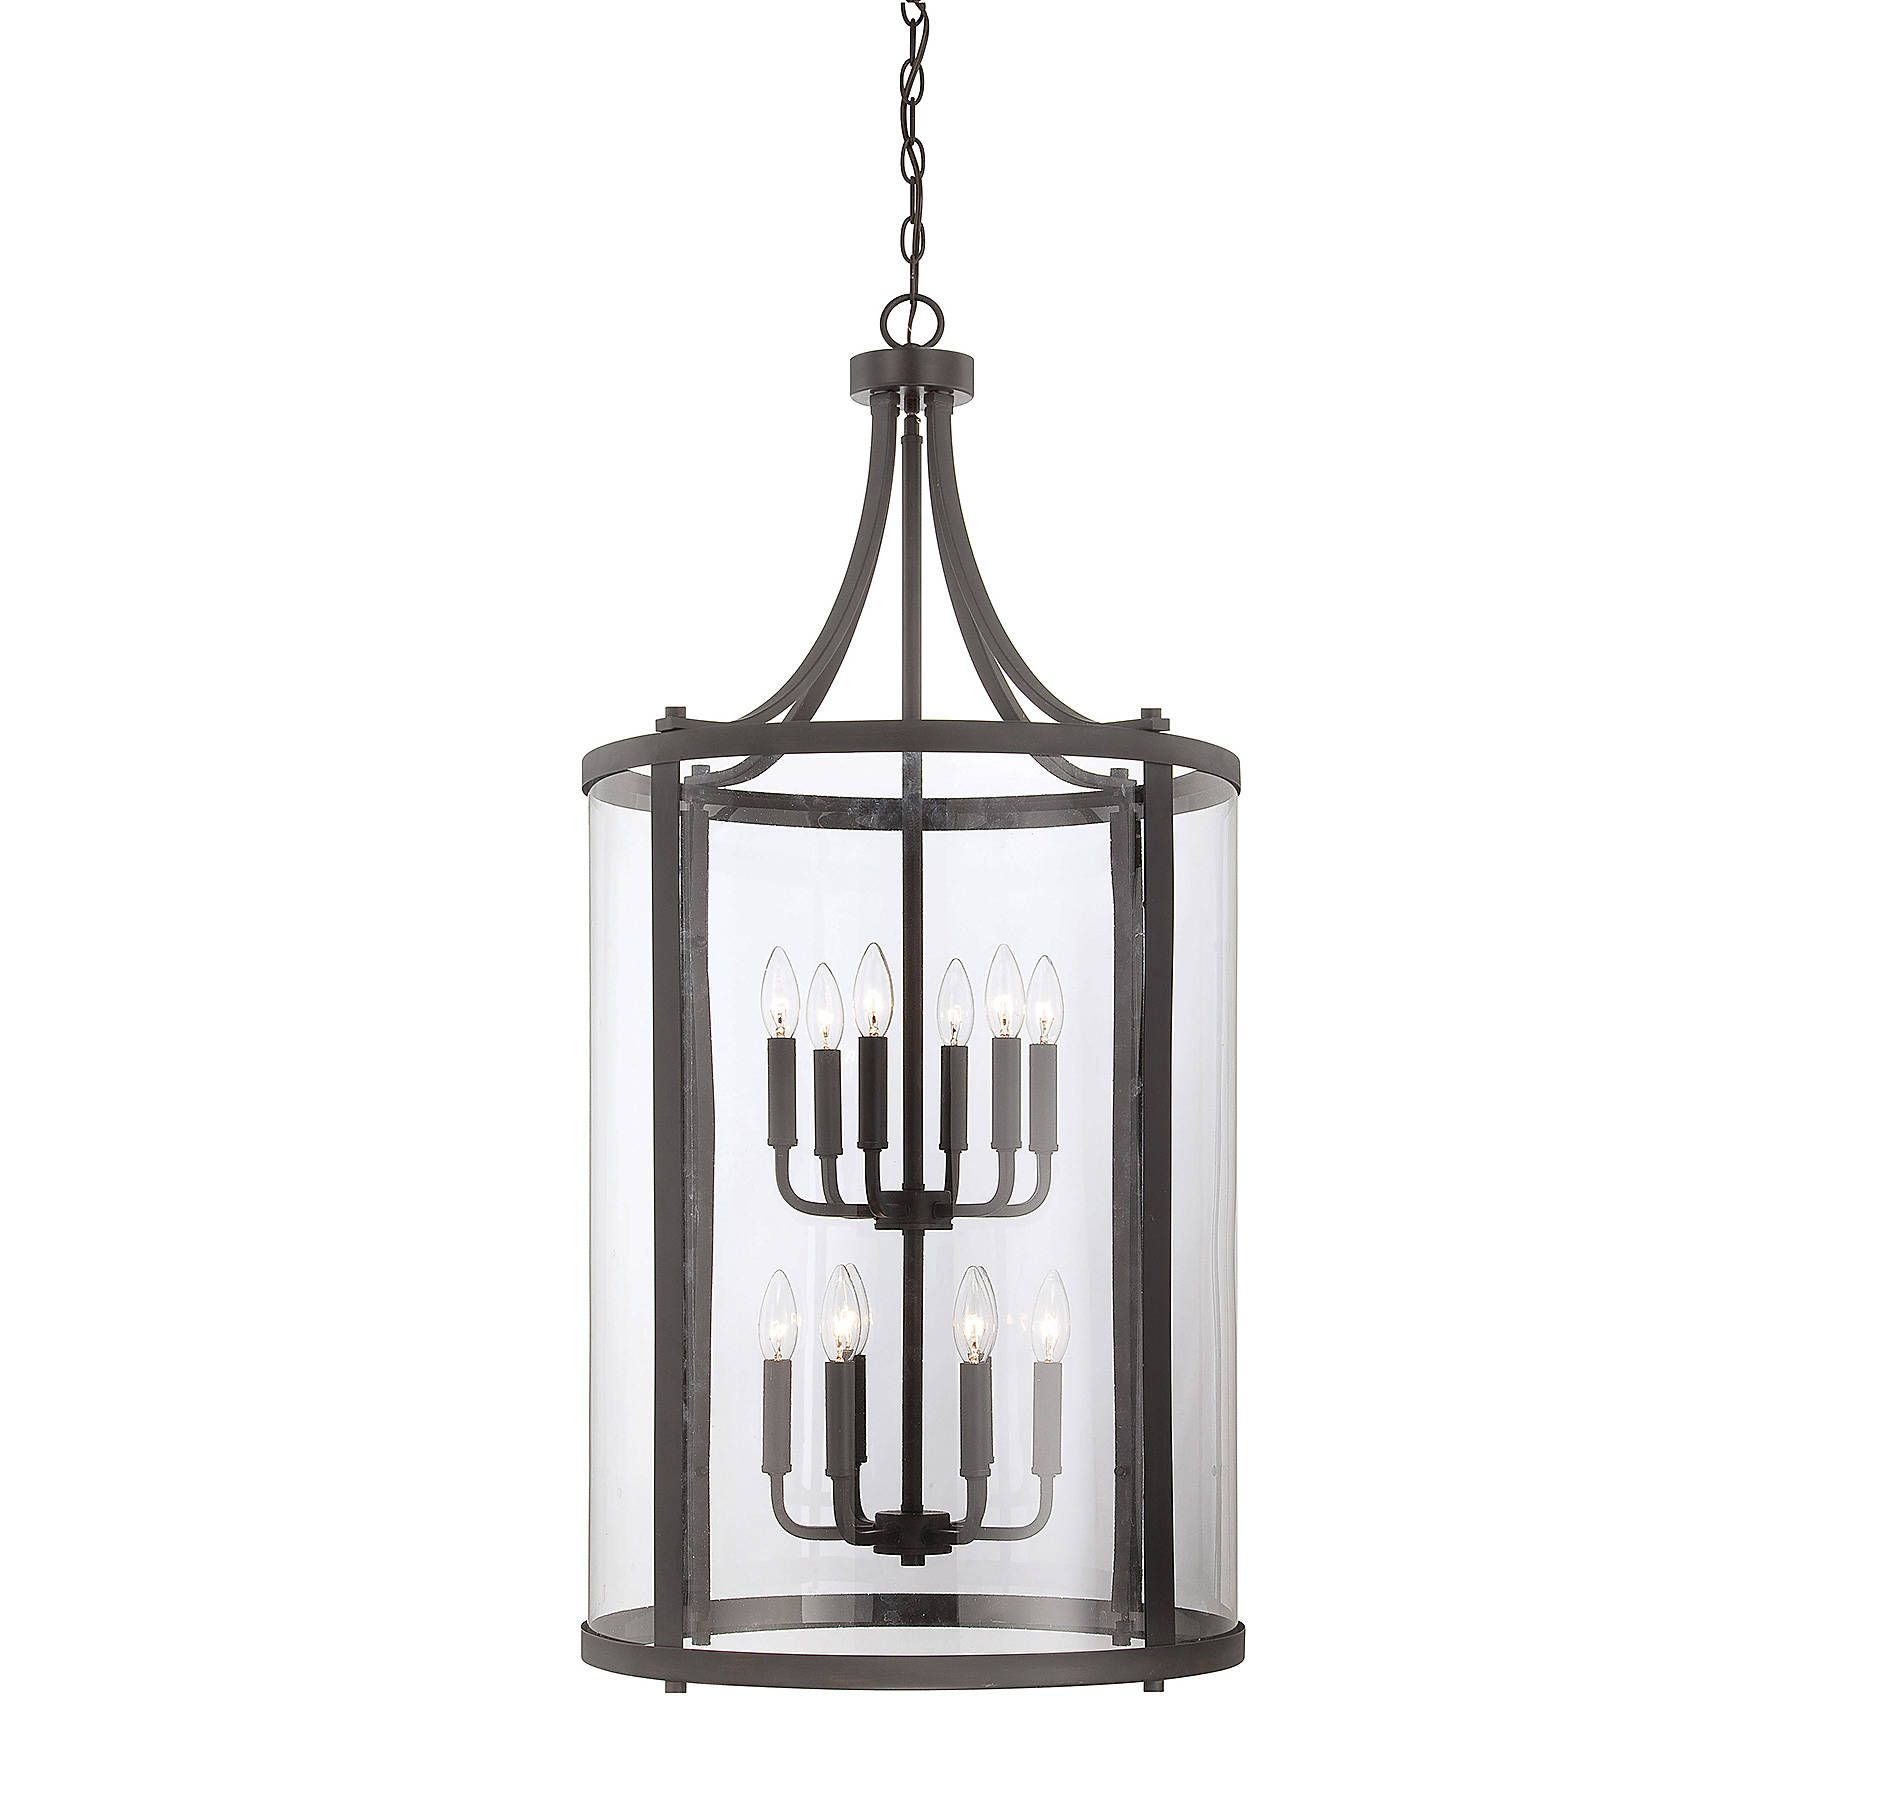 Savoy House 7 1042 12 13 Penrose 12 Light Foyer Lantern in